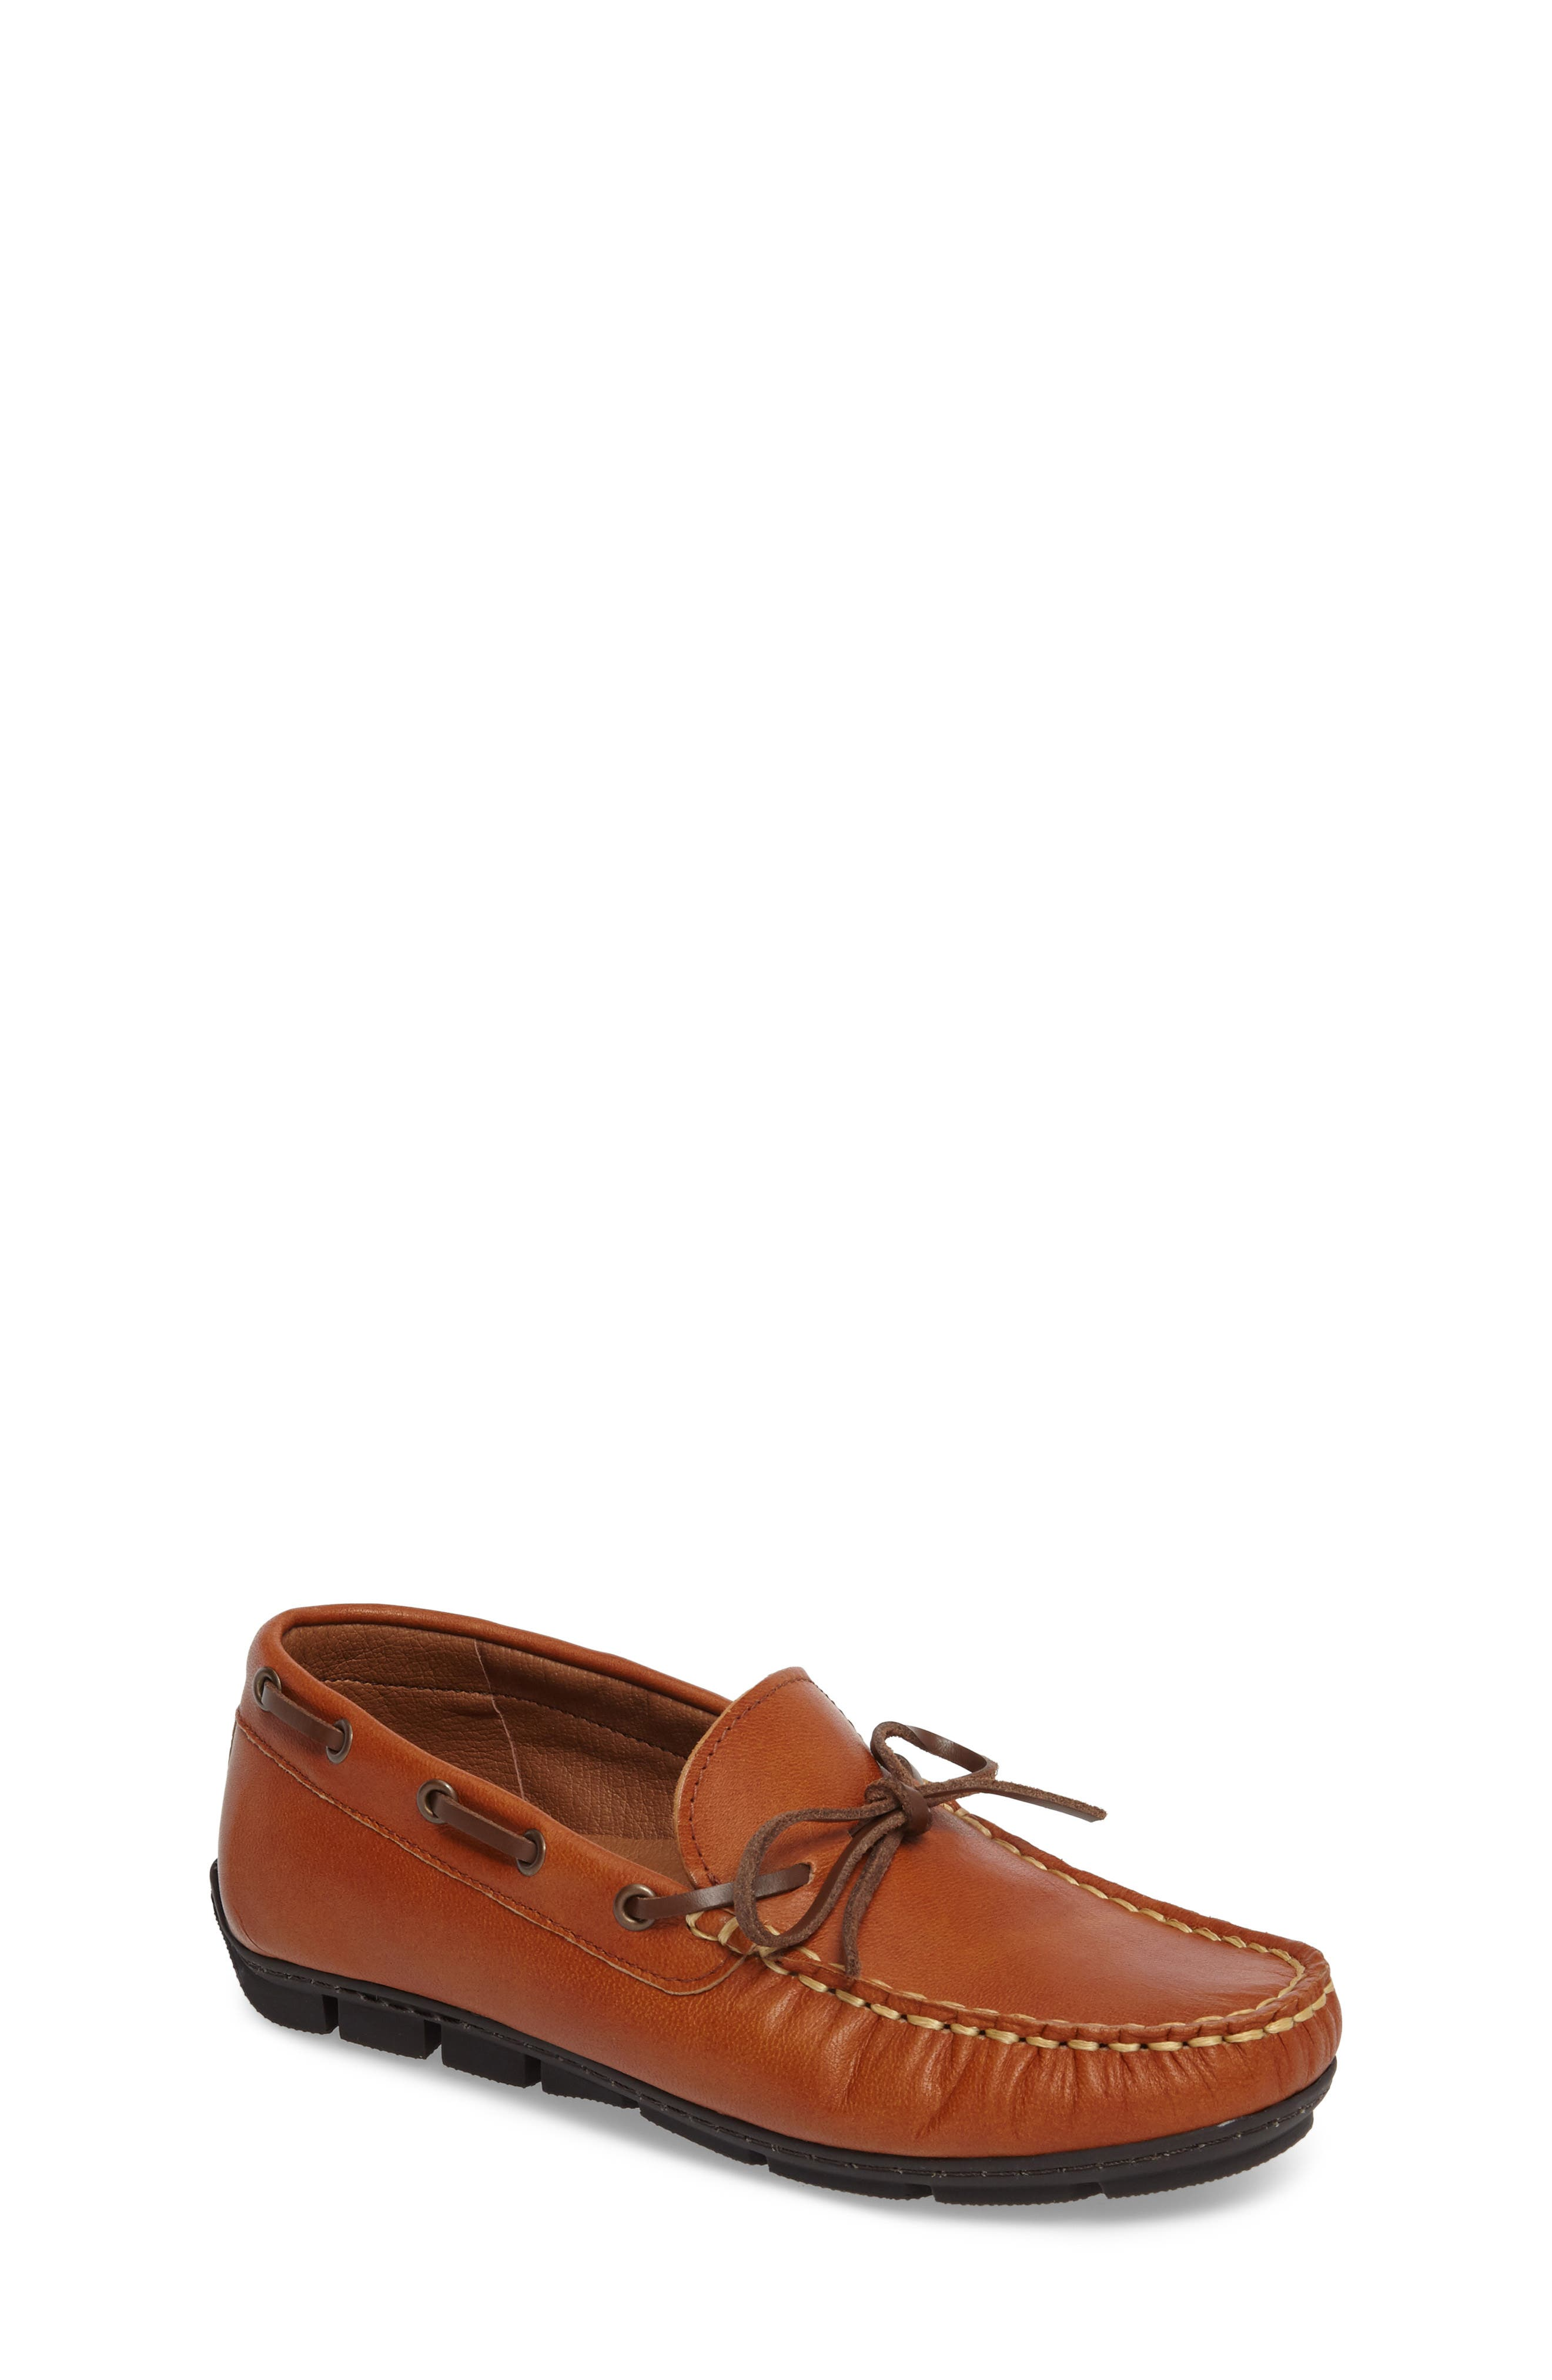 Doile Loafer,                         Main,                         color, NATURALE LEATHER